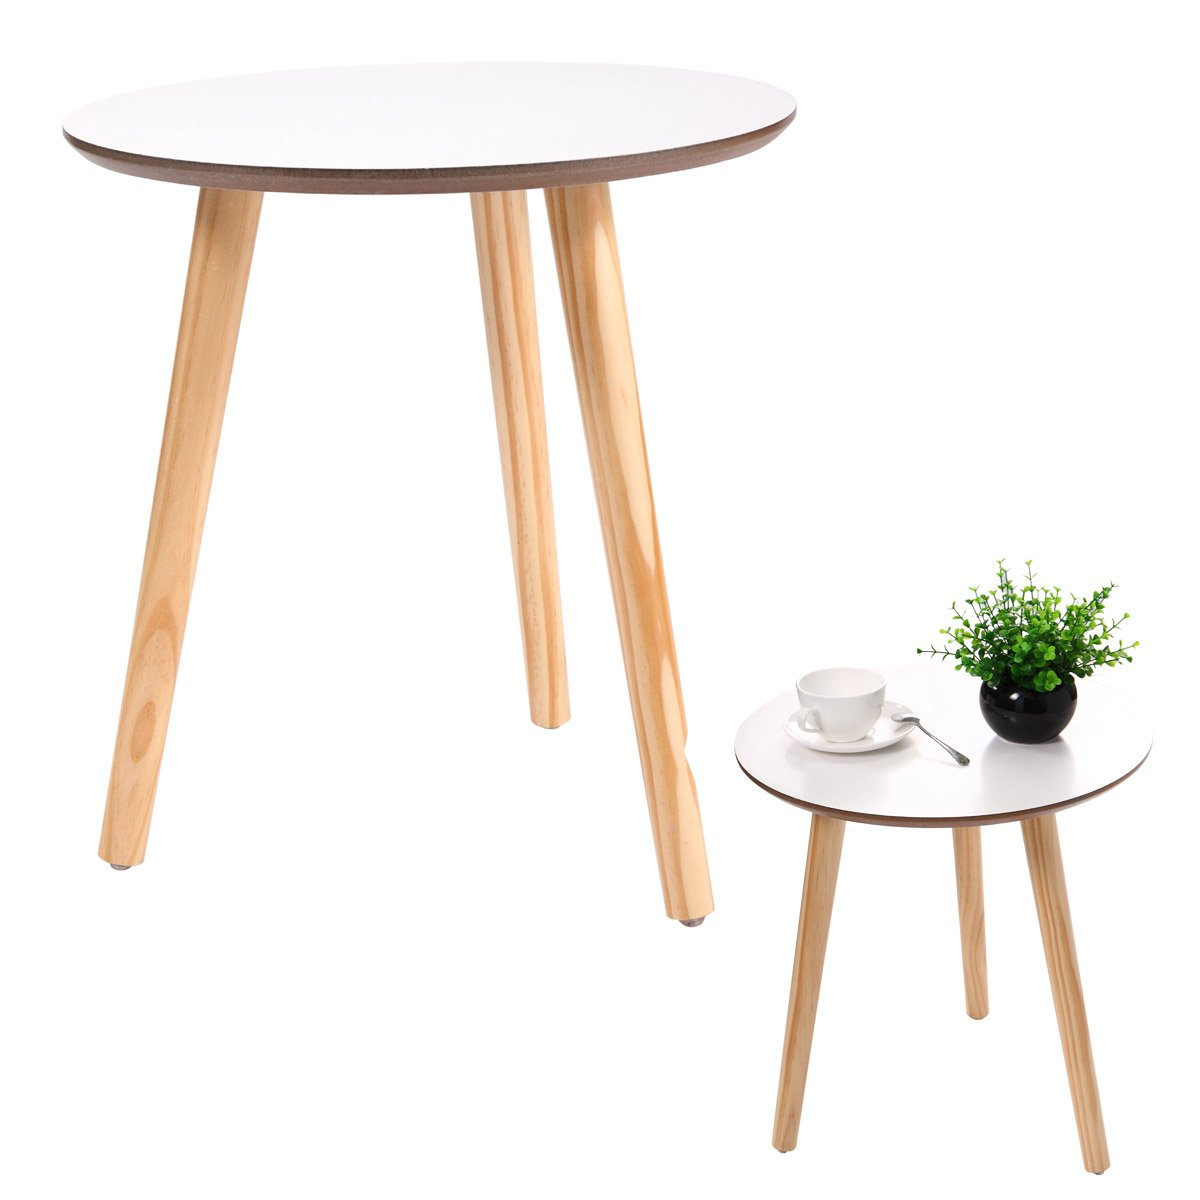 jaxpety three legged bamboo end table modern round accent with screw legs coffee environmentally friendly side for magazines books plants kitchen mid century dresser mirrored